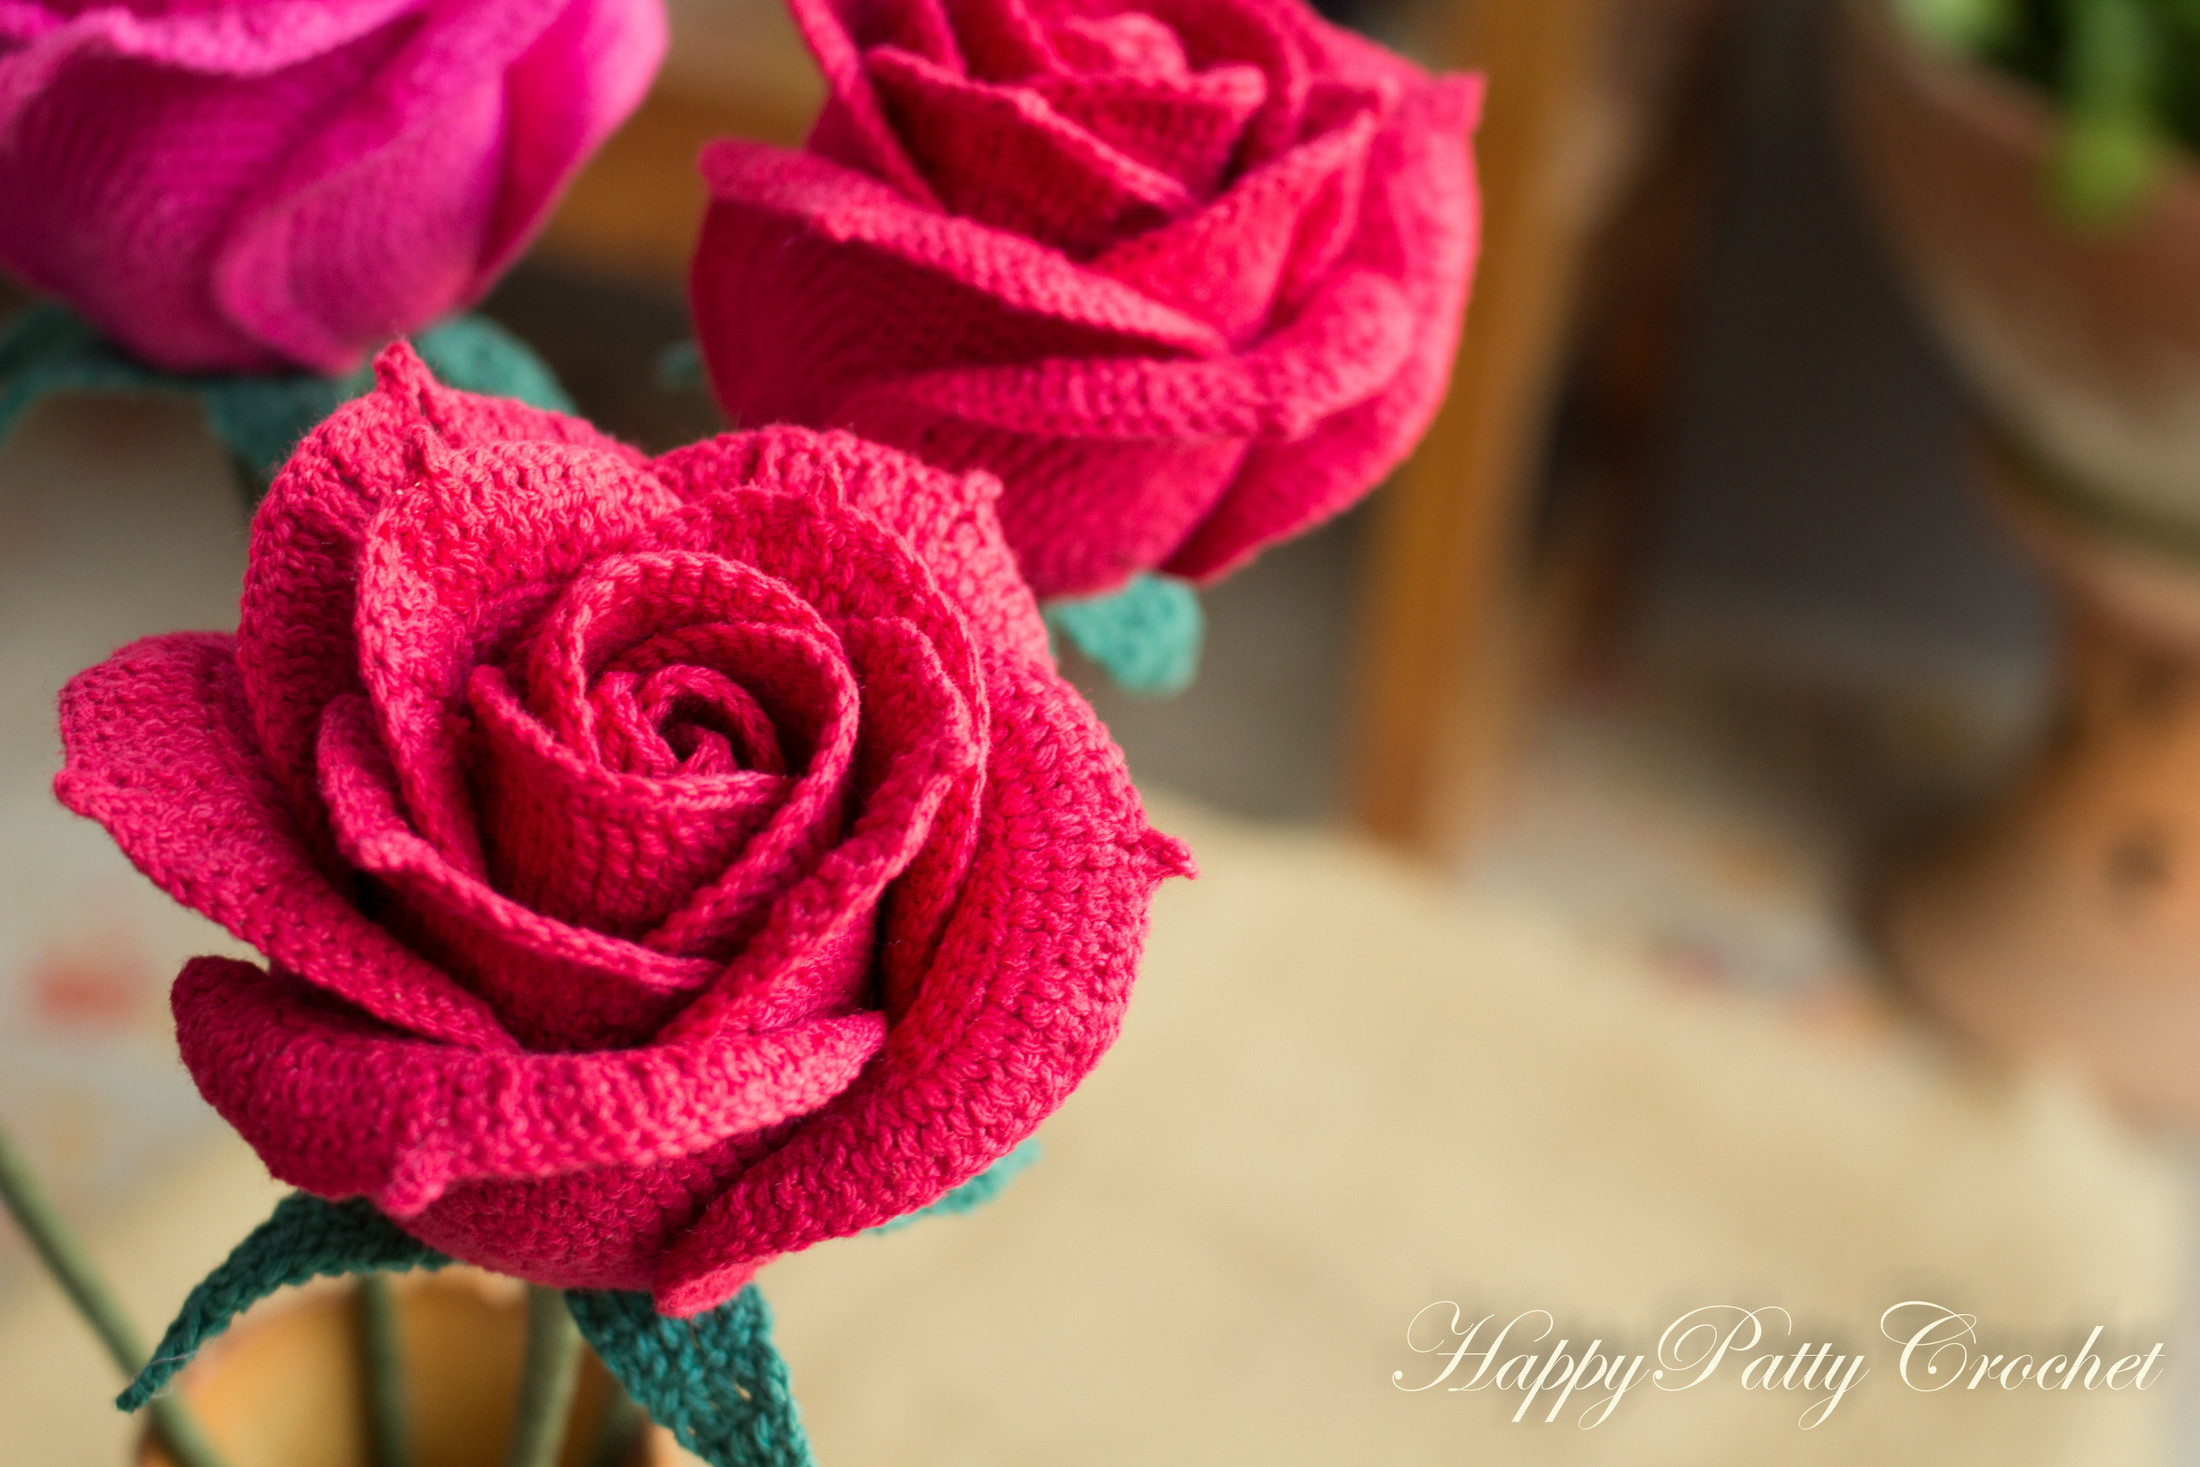 Free Crochet Rose Pattern Inspirational Crochet Open Rose Pattern by Happy Patty Crochet Of Attractive 49 Pics Free Crochet Rose Pattern